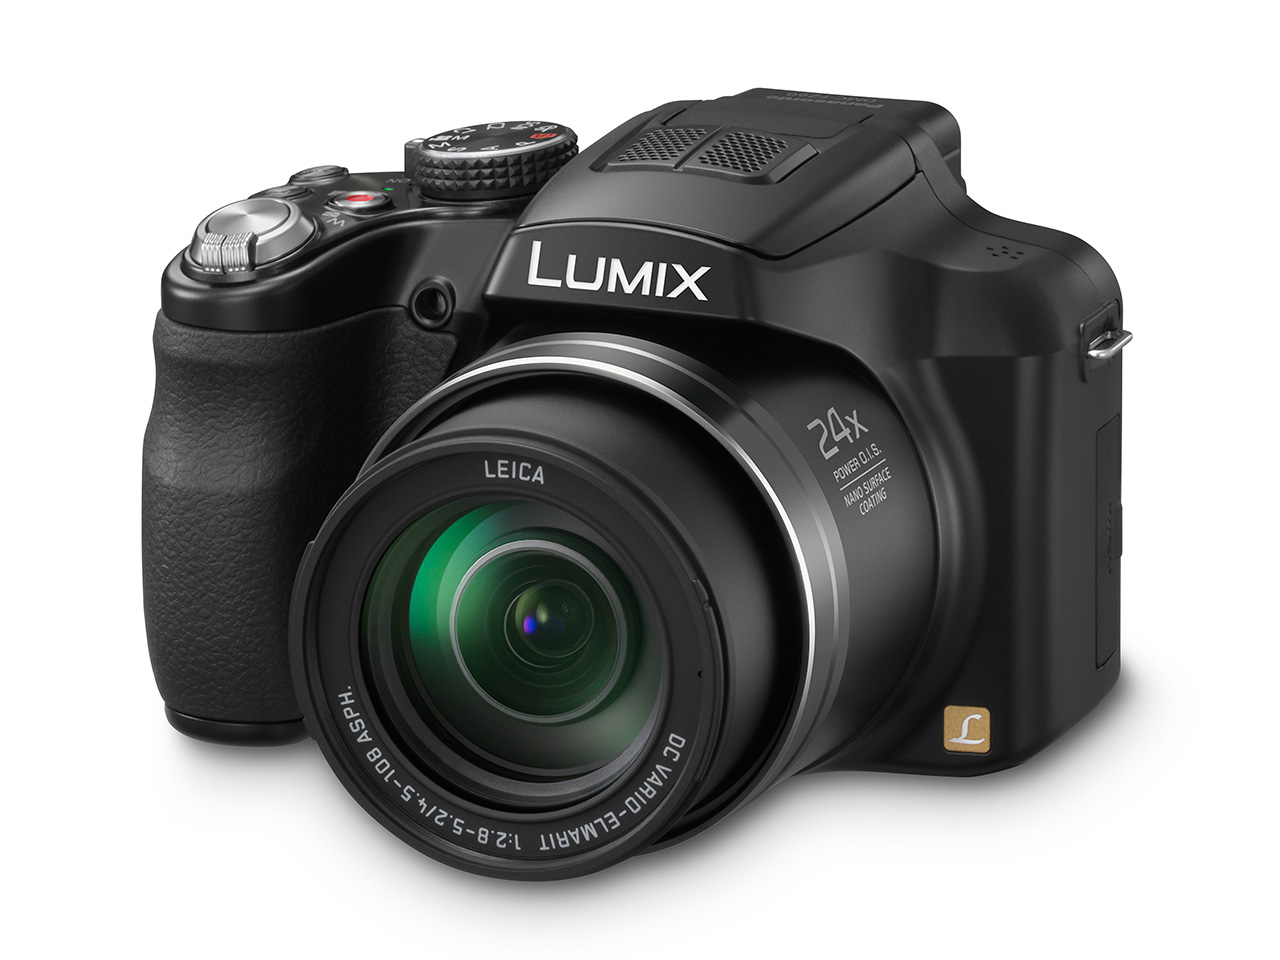 panasonic creates dmc fz60 and fz62 mid price 16mp superzooms rh dpreview com Newest Panasonic Lumix Camera 24X Panasonic Lumix DMC